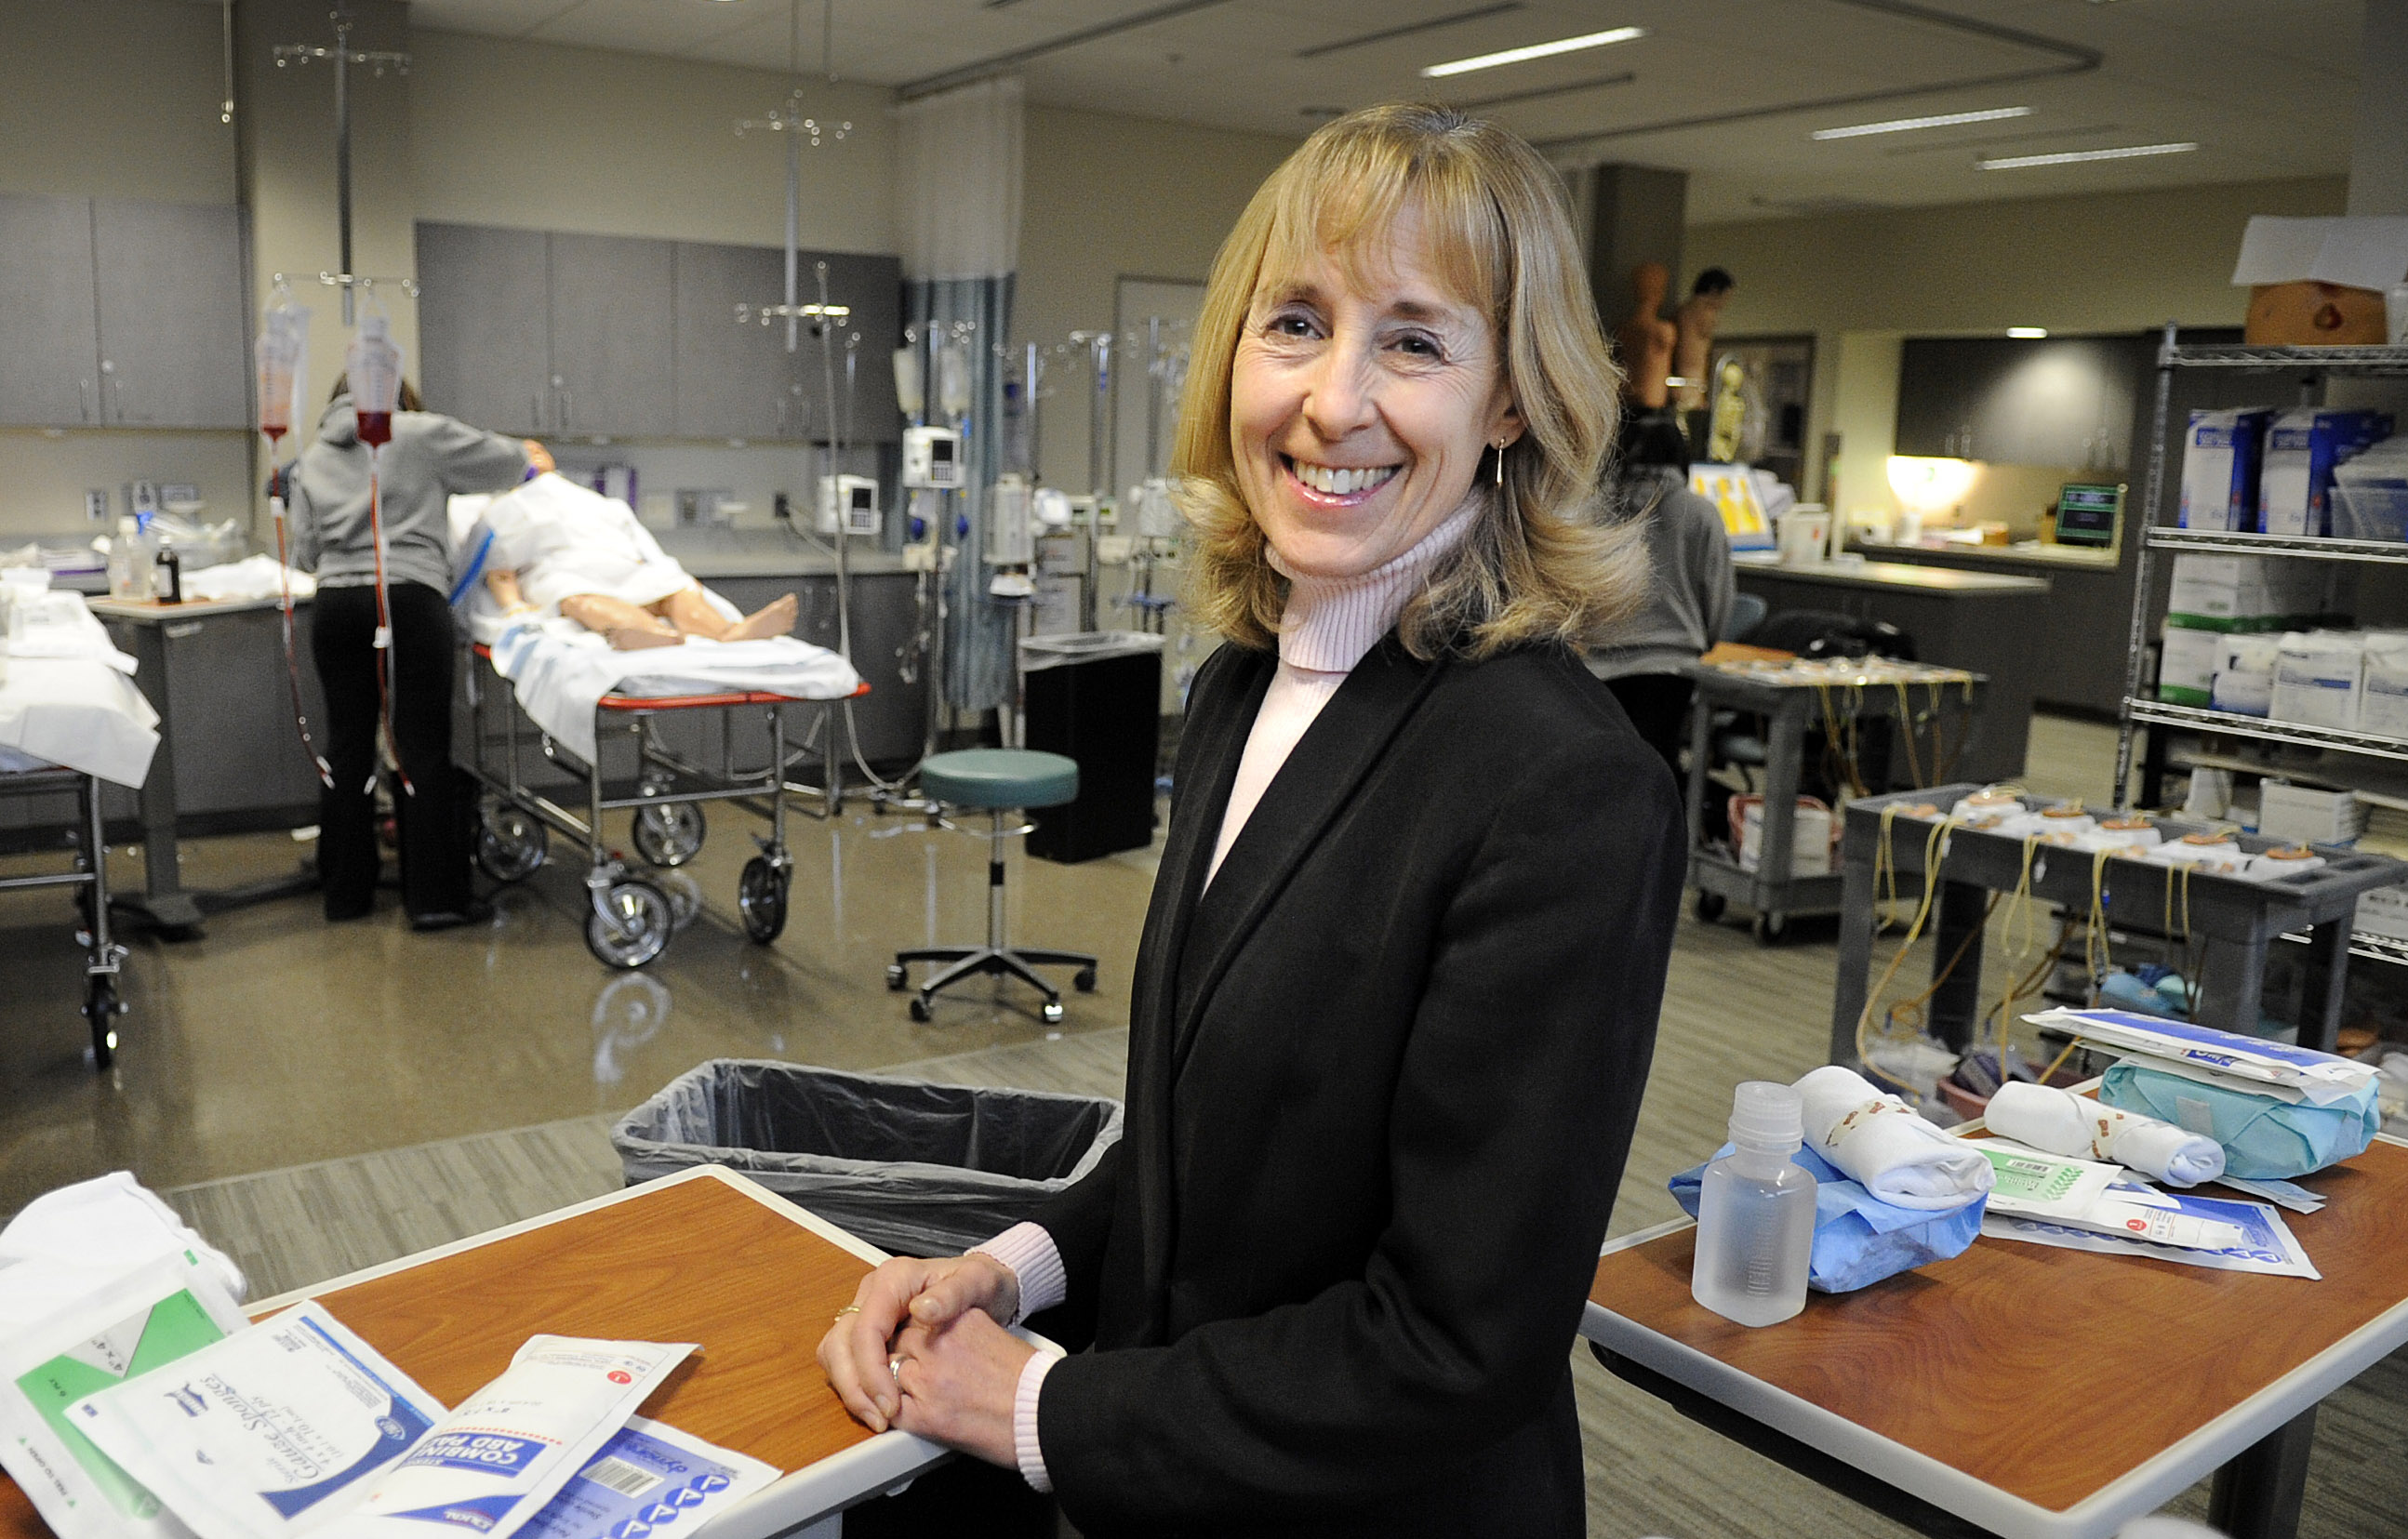 Wsu Associate Dean Says Nursing Can Be Healthy Career Choice The